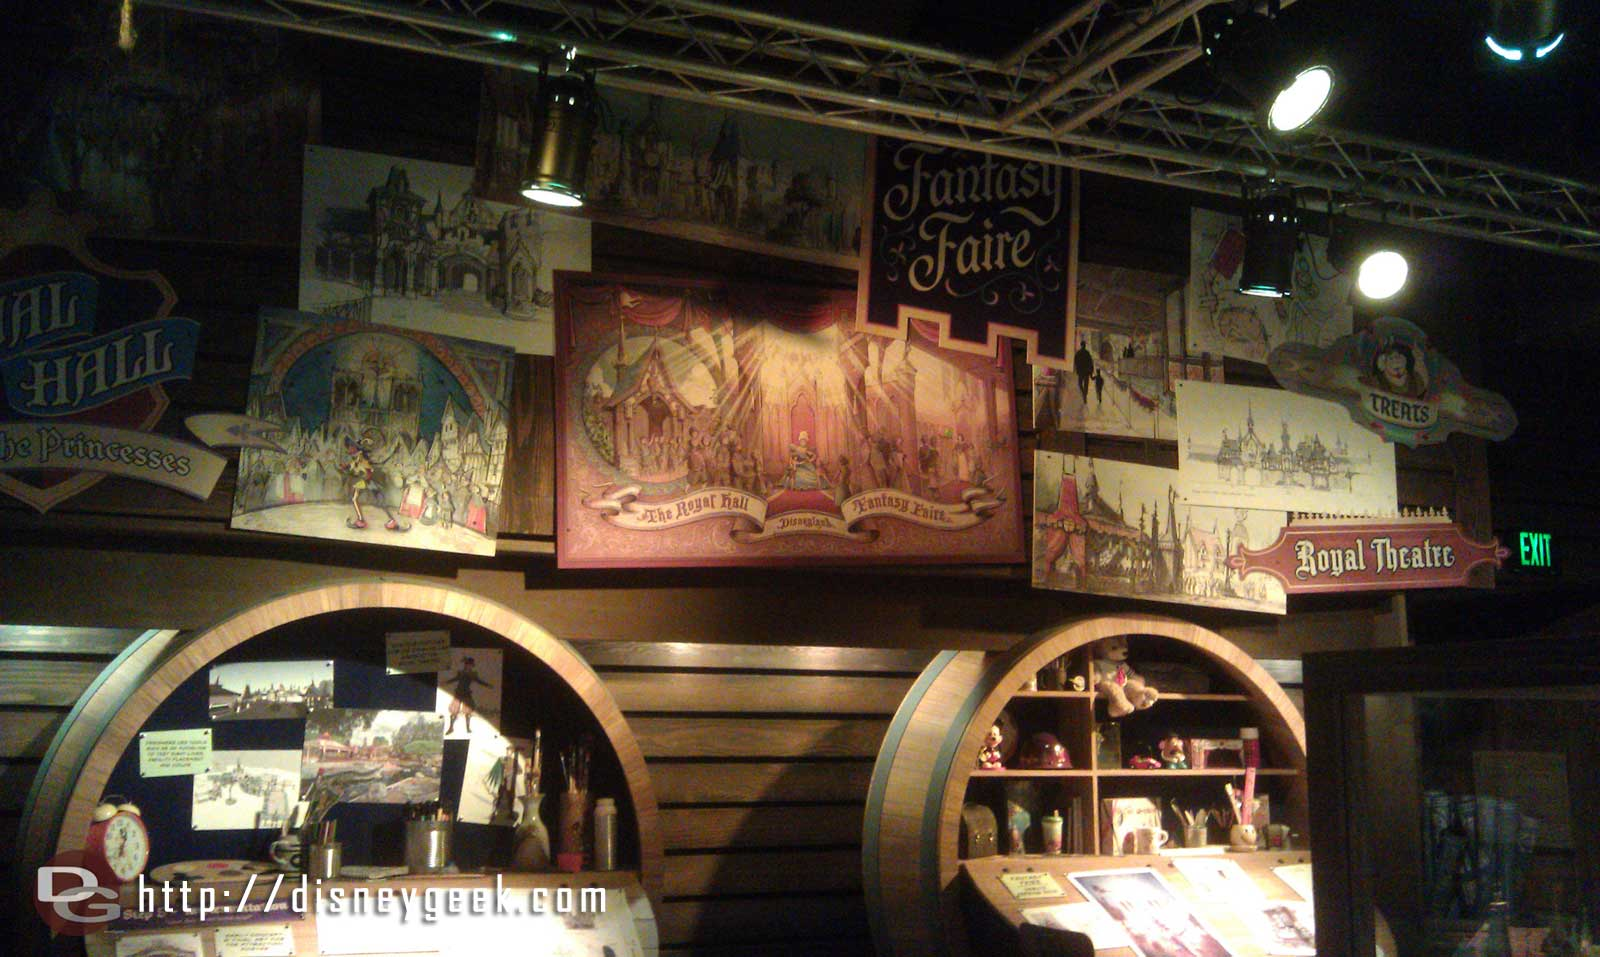 I will have an extensive look at the artwork of Fantasy Faire @ Blue Sky Cellar Saturday